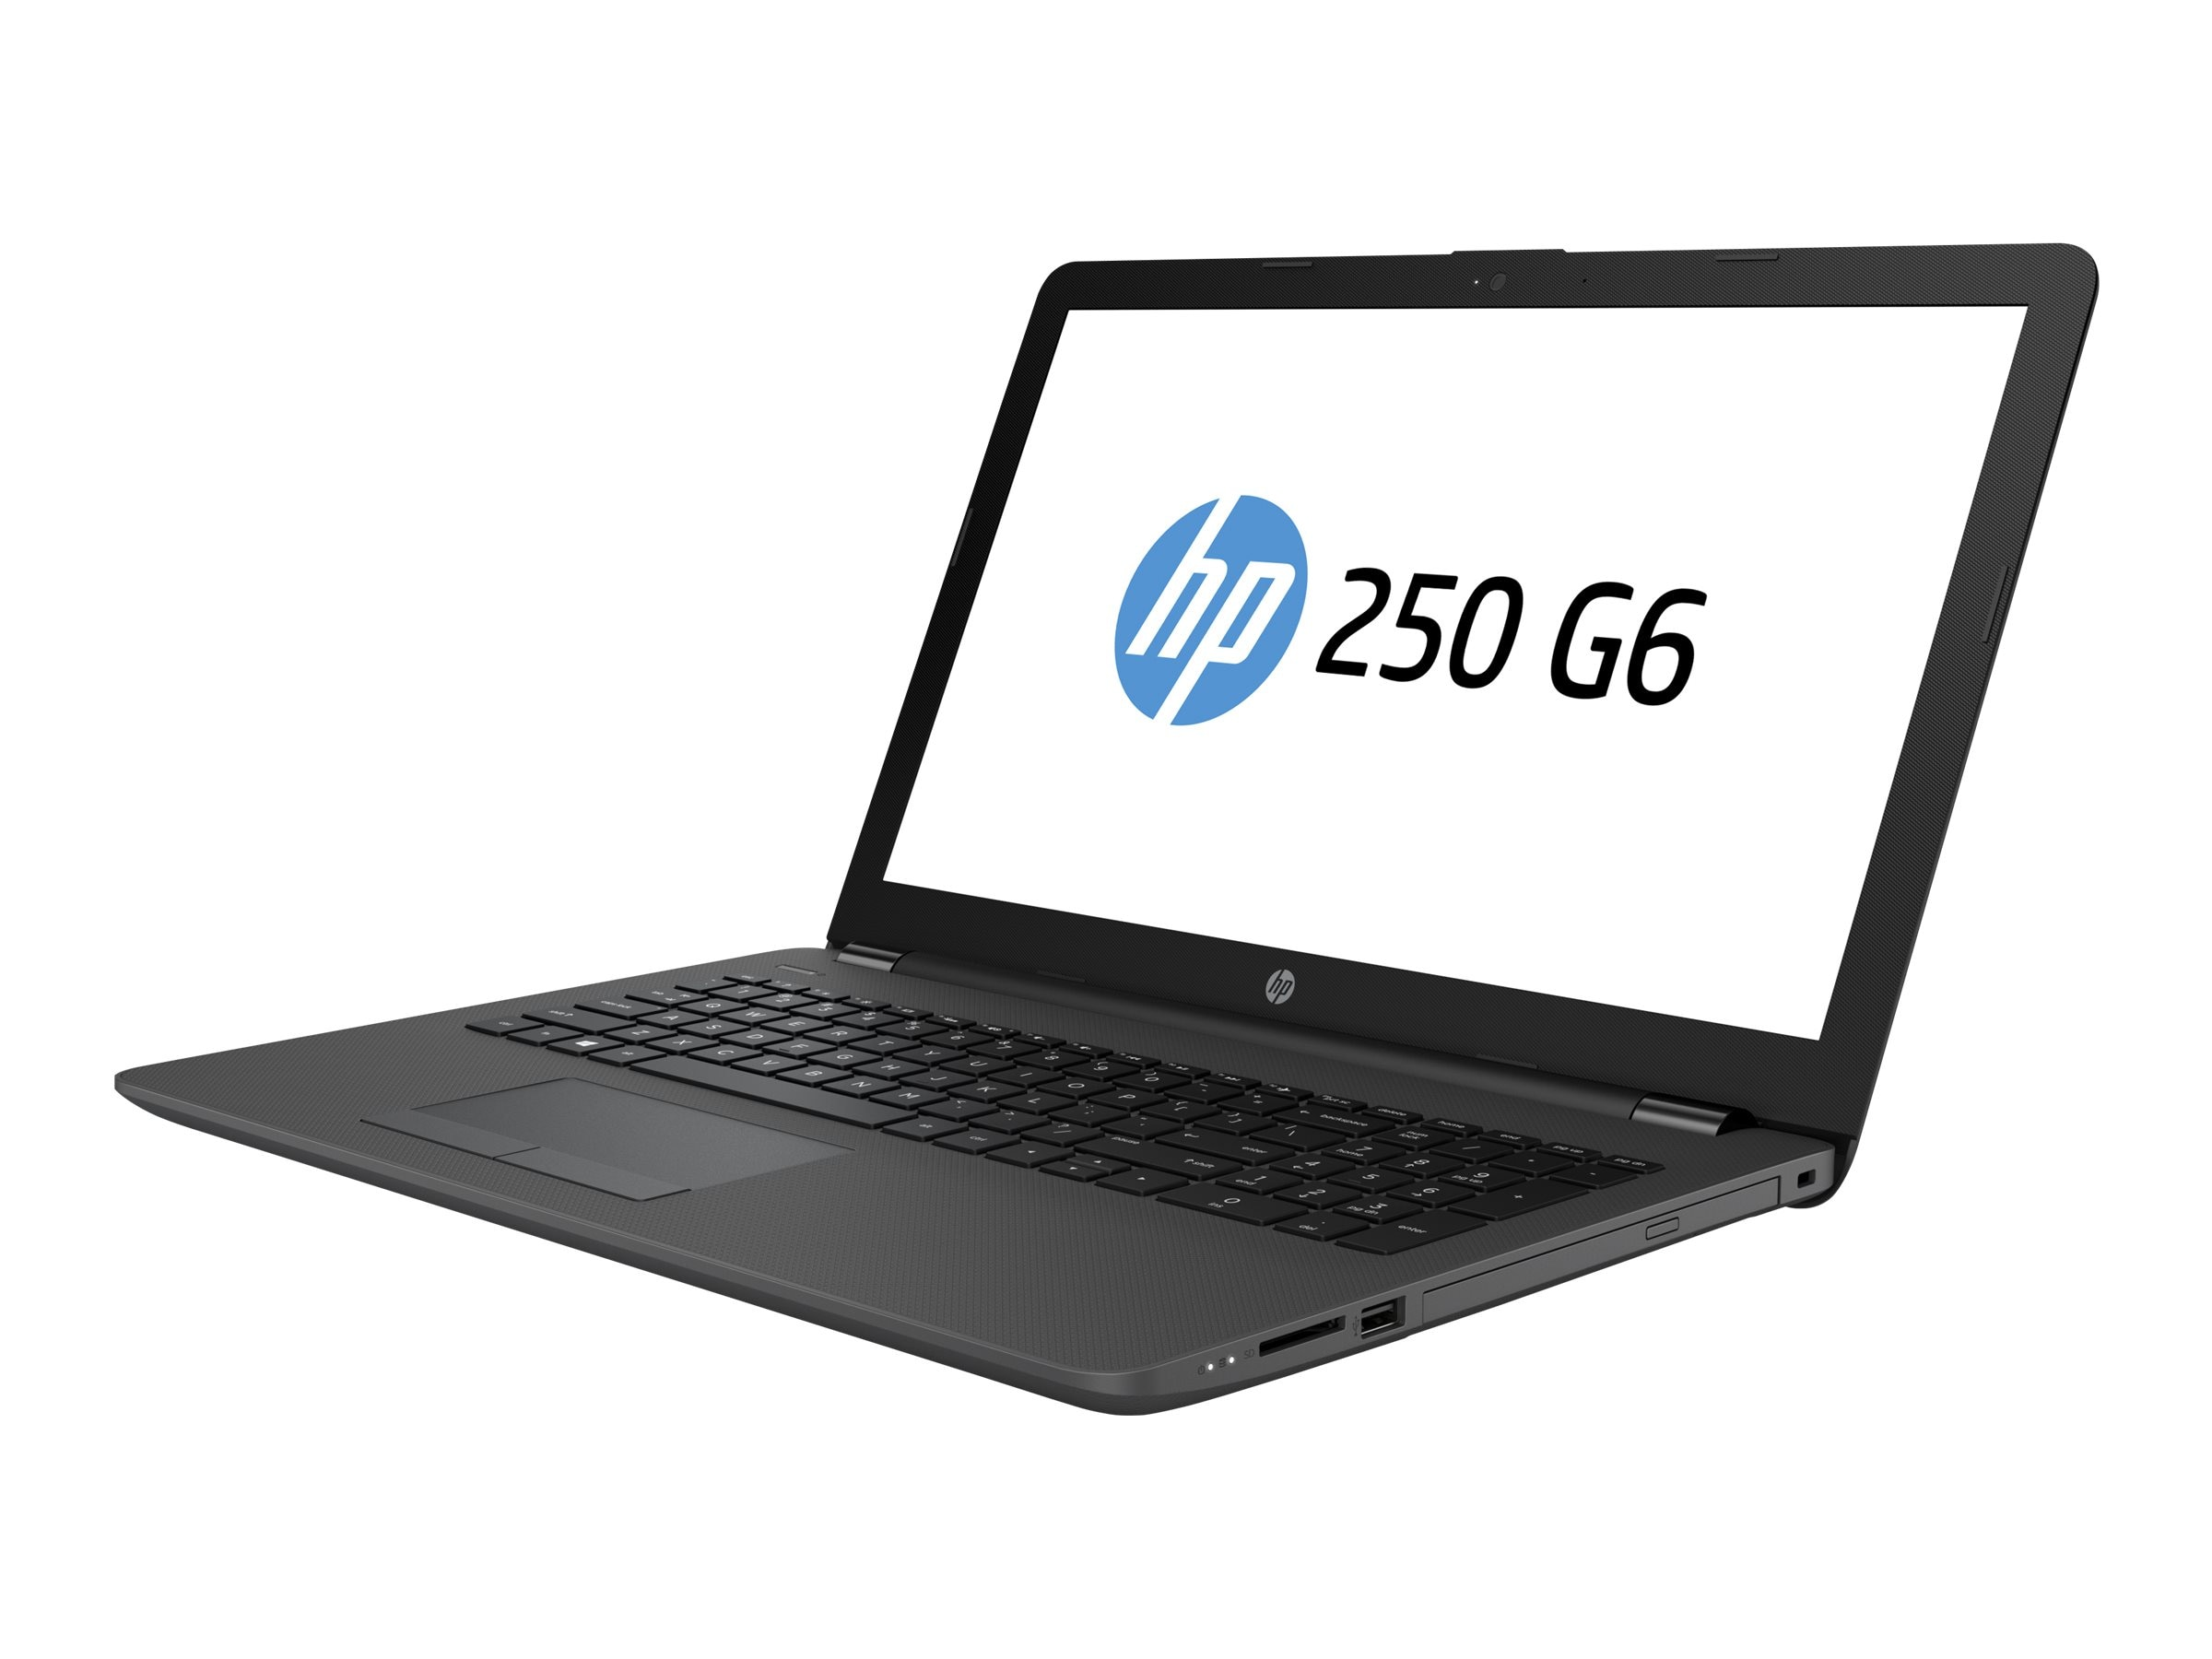 Image result for hp 255 g6 600 x 600